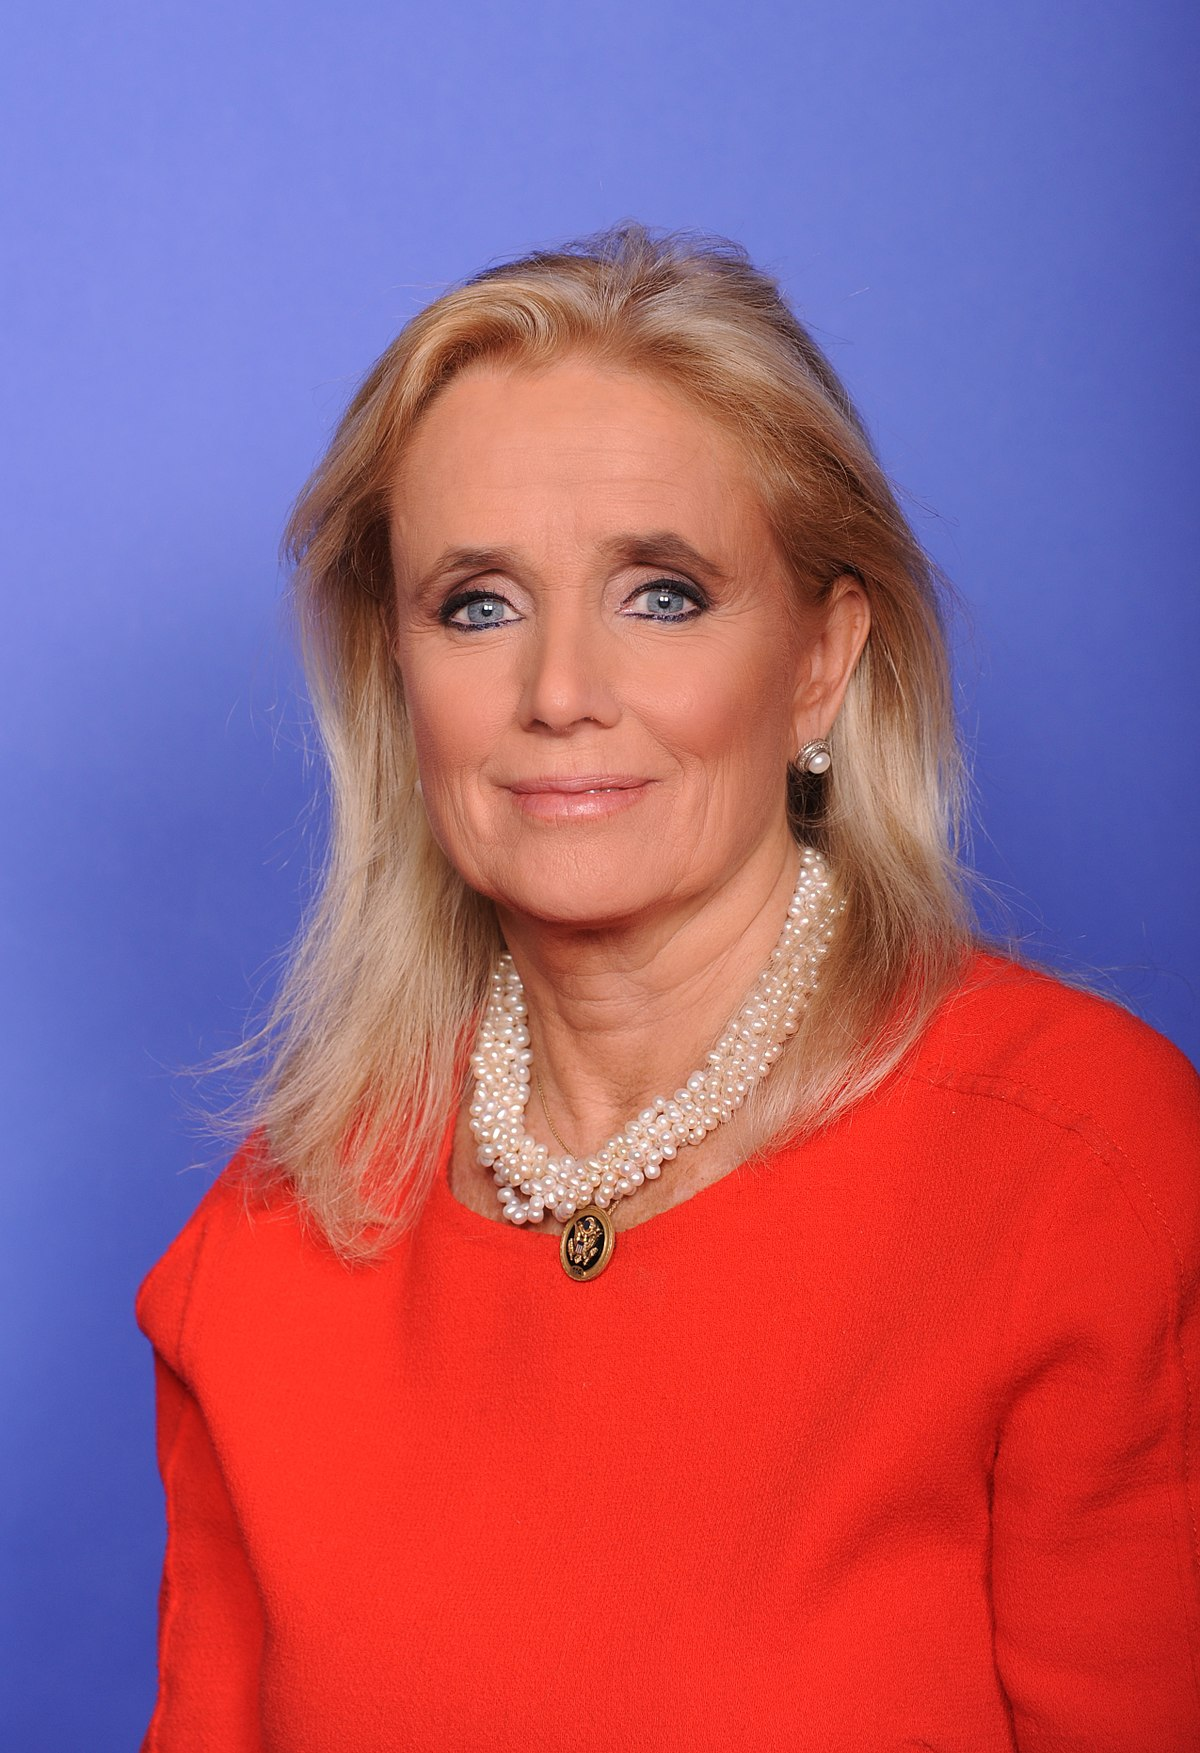 Image result for debbie dingell